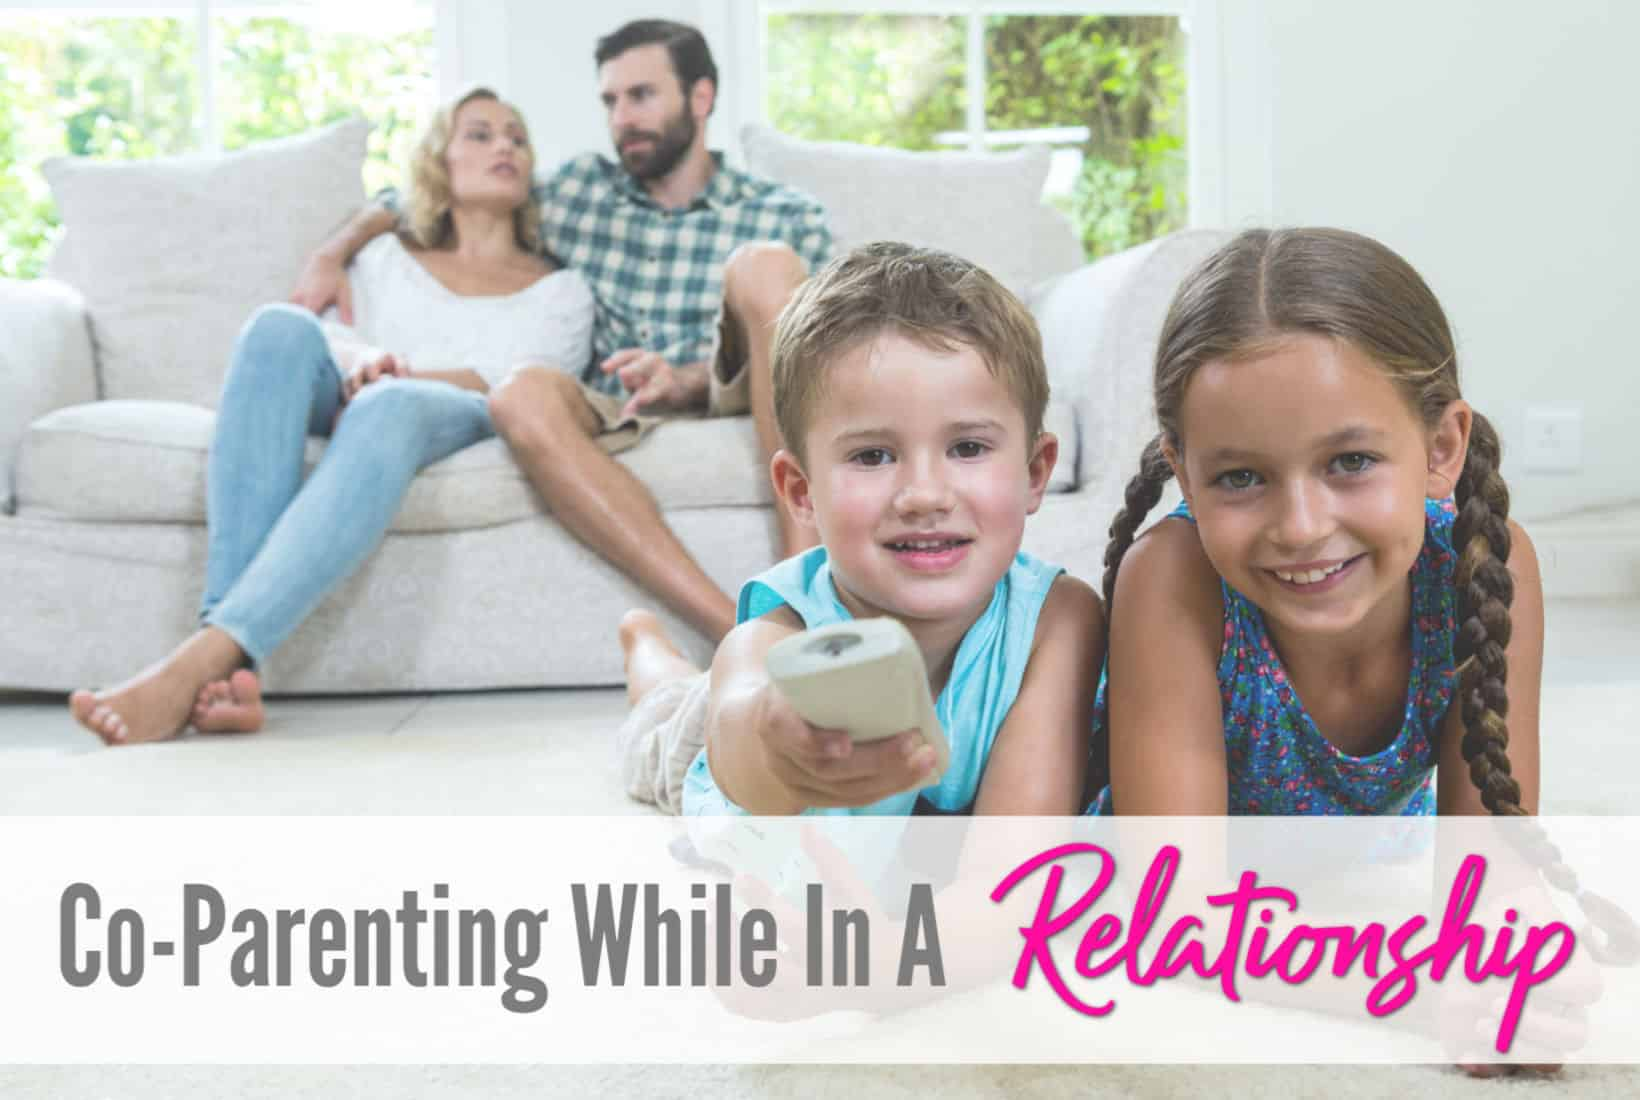 co-parenting while in a relationship